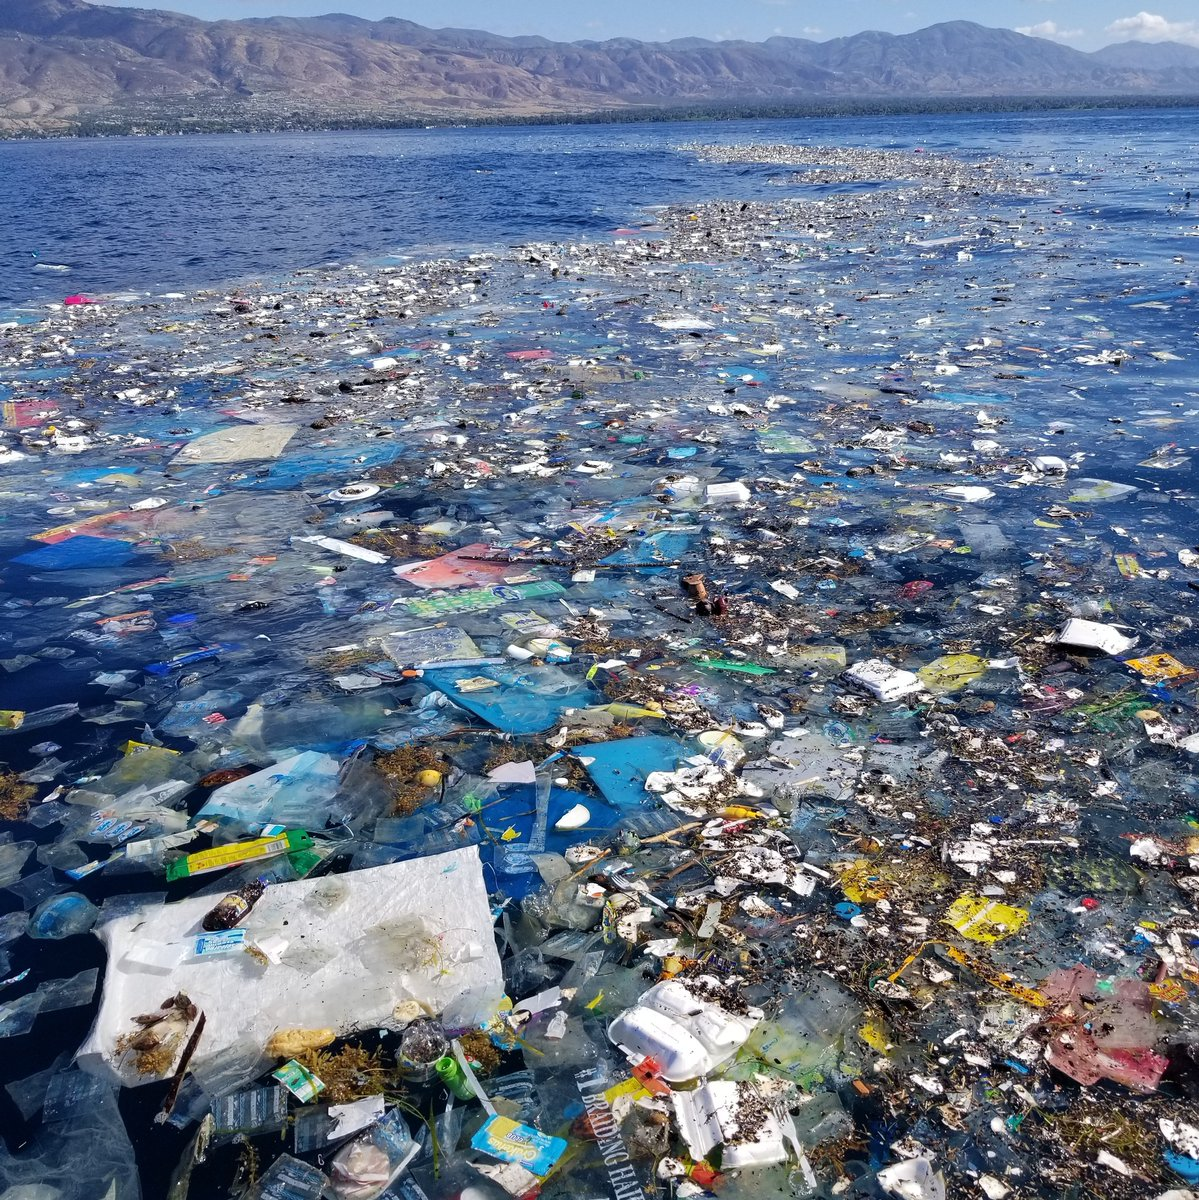 """It's just one piece of plastic"" -said 8 billion people.  Refusing single-use plastic is one of the best ways to fight the ocean plastic crisis.   By saying no and opting for sustainable alternatives, we can be one step closer to curbing the ocean plastic crisis."